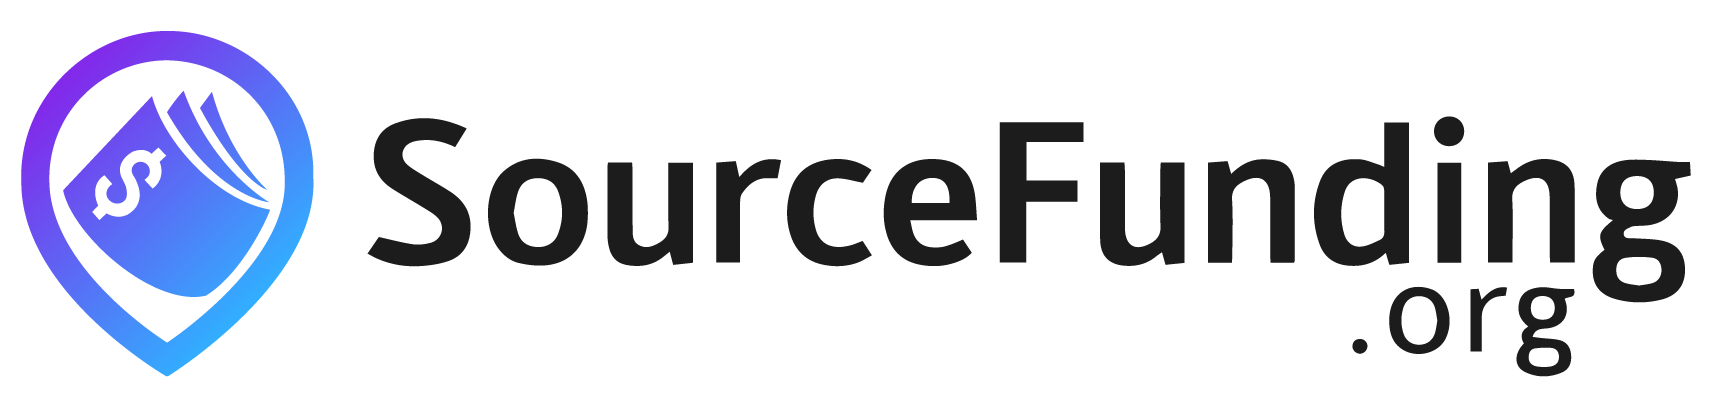 SourceFunding.org (W. Michael Short, Founder) FinTech Socially Responsible Financial Inclusion